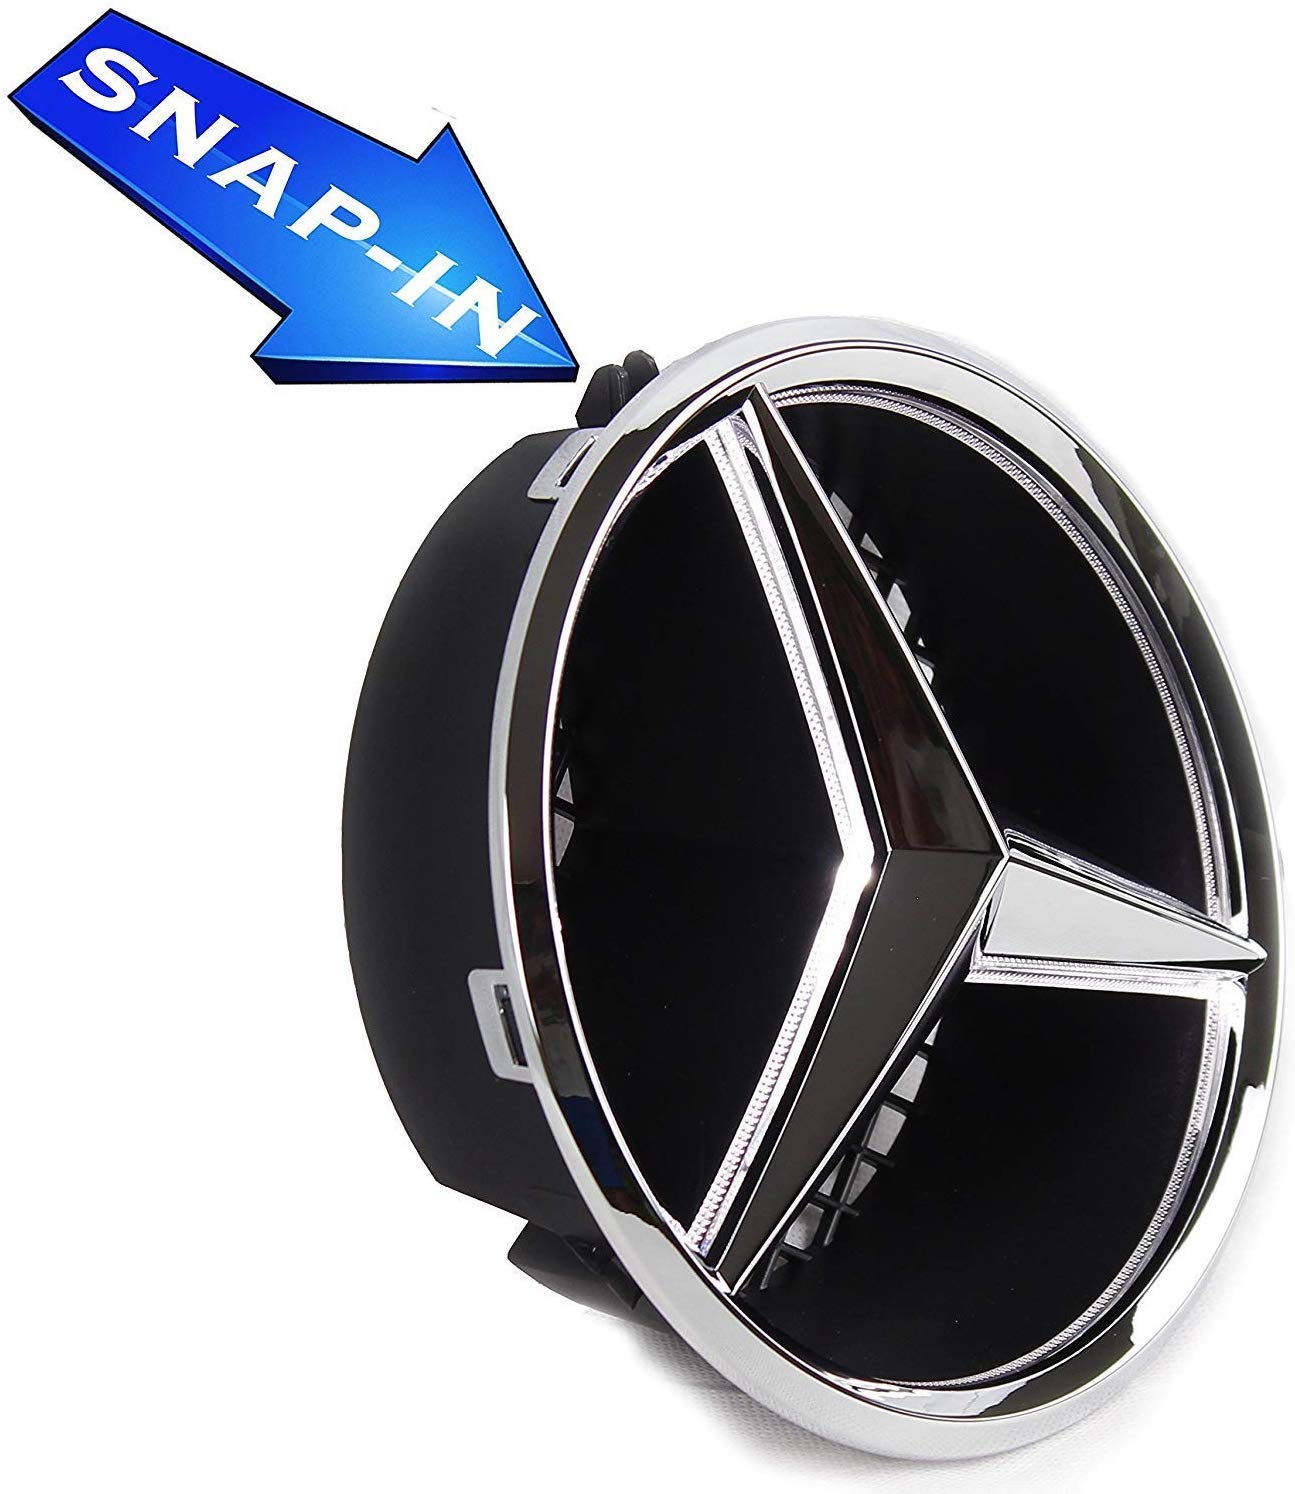 Front Car Grille Badge Illuminated Logo Hood Star DRL White Light Drive Brighter W205 C-Class, W212 E-Class, C117 CLA-Class, etc LED Emblem for Mercedes Benz 2011-2018